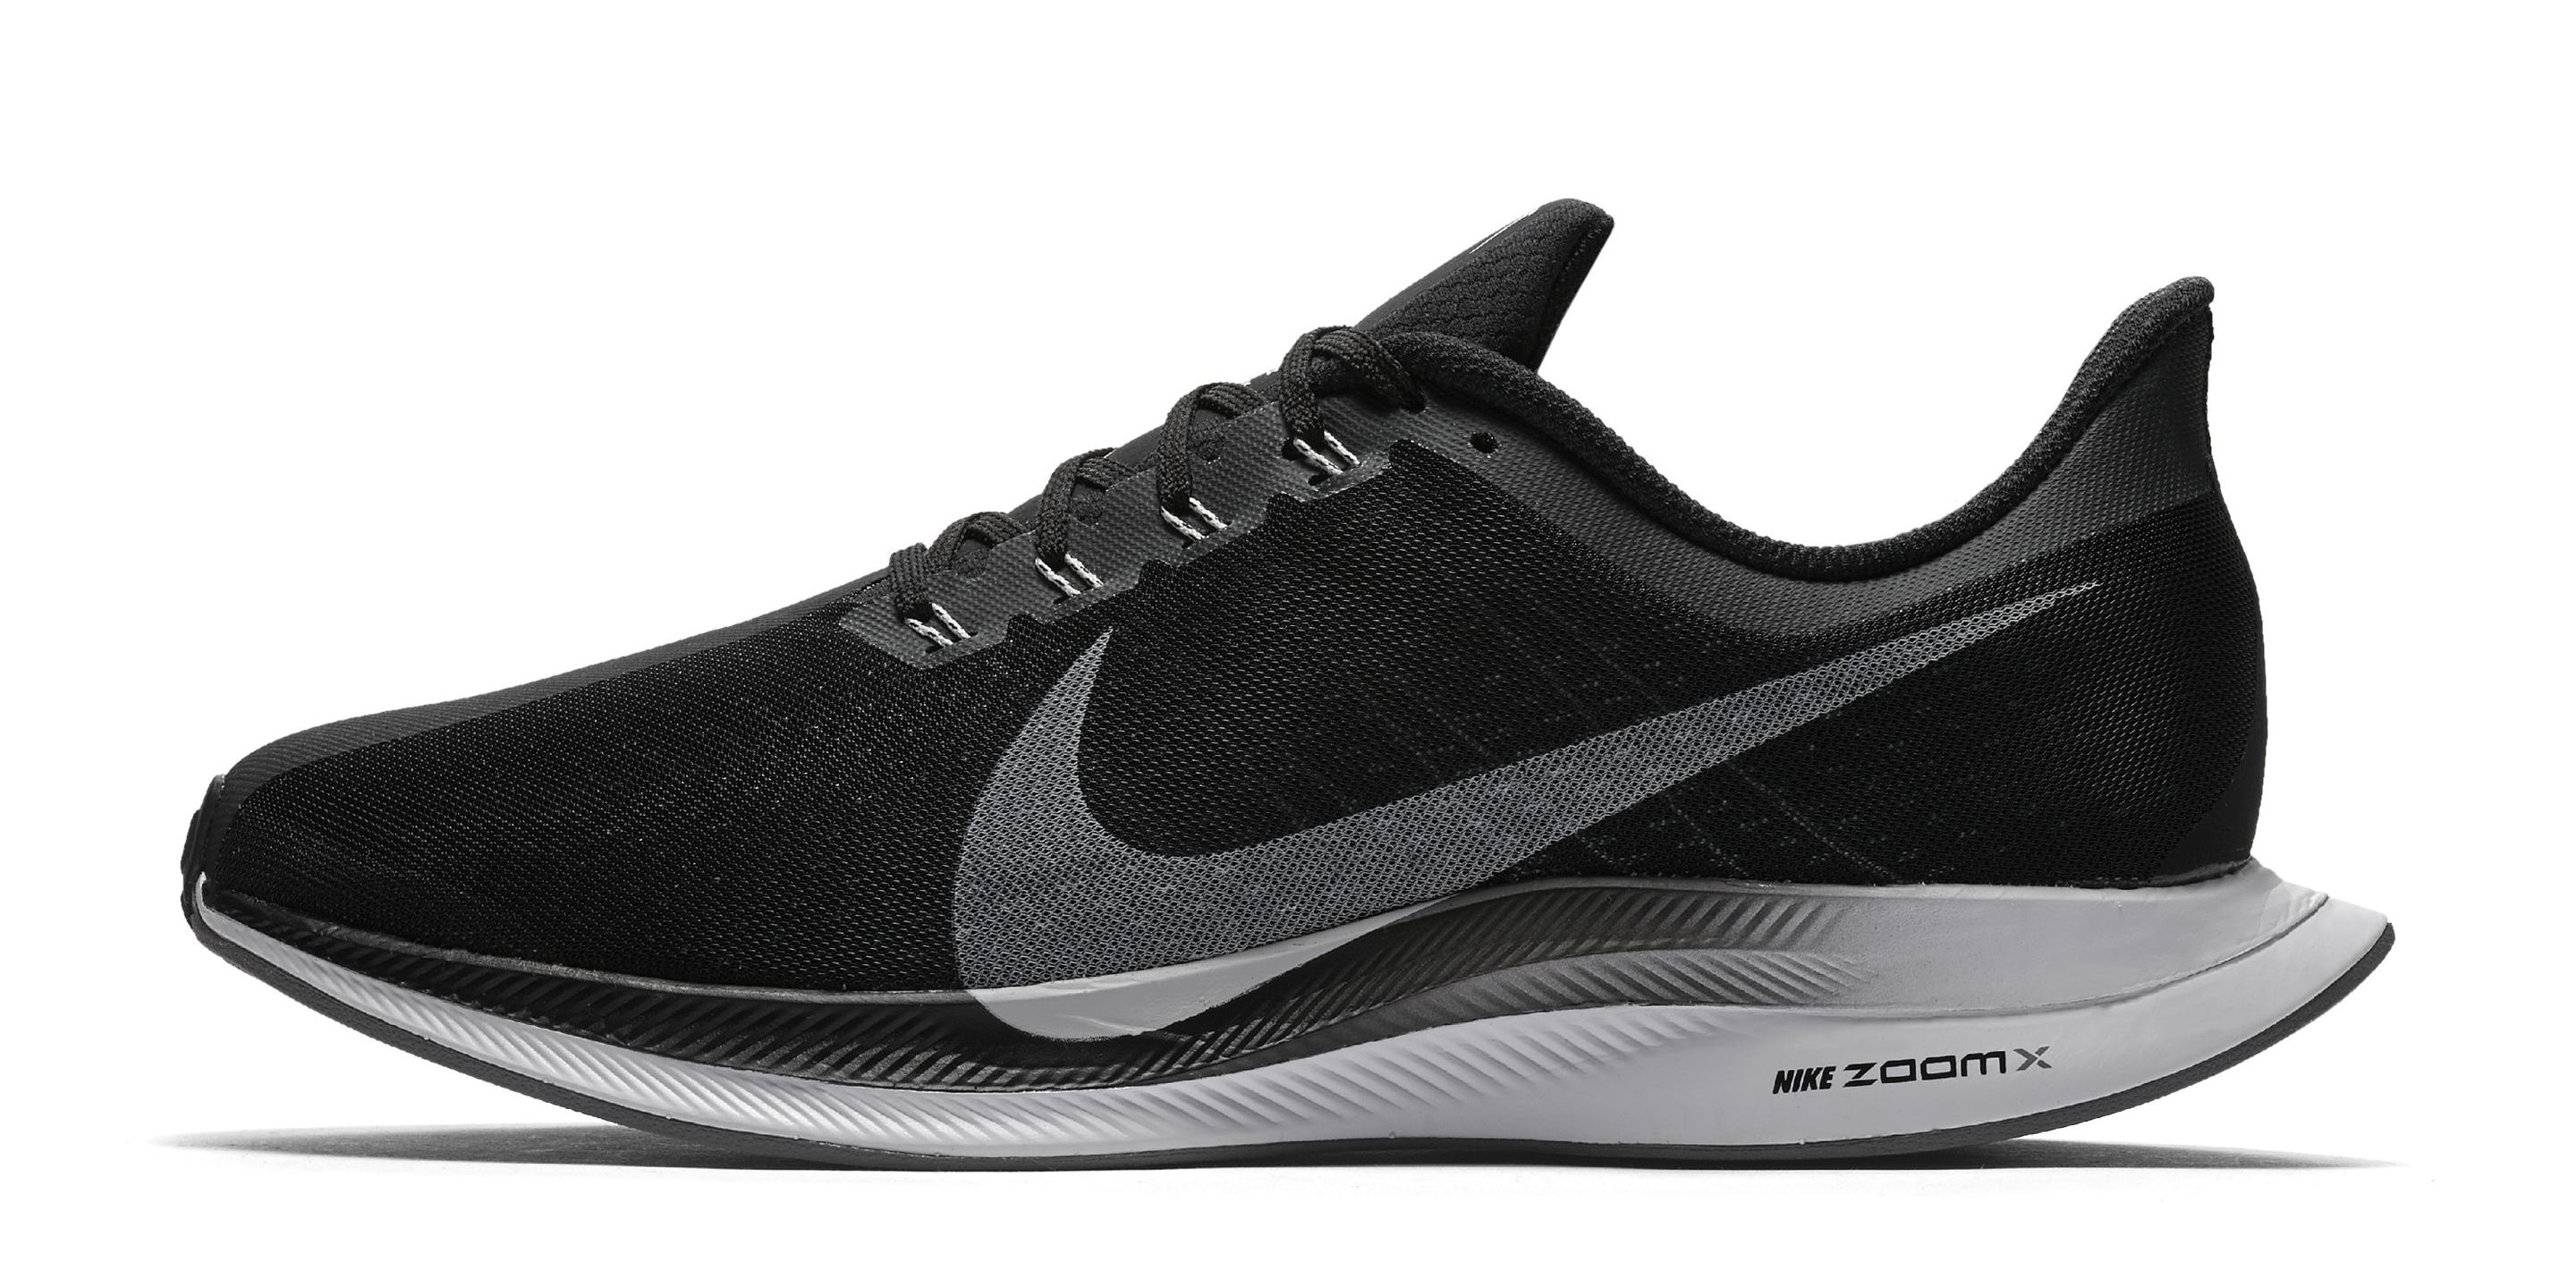 06c2856da74 Best Nike Running Shoes